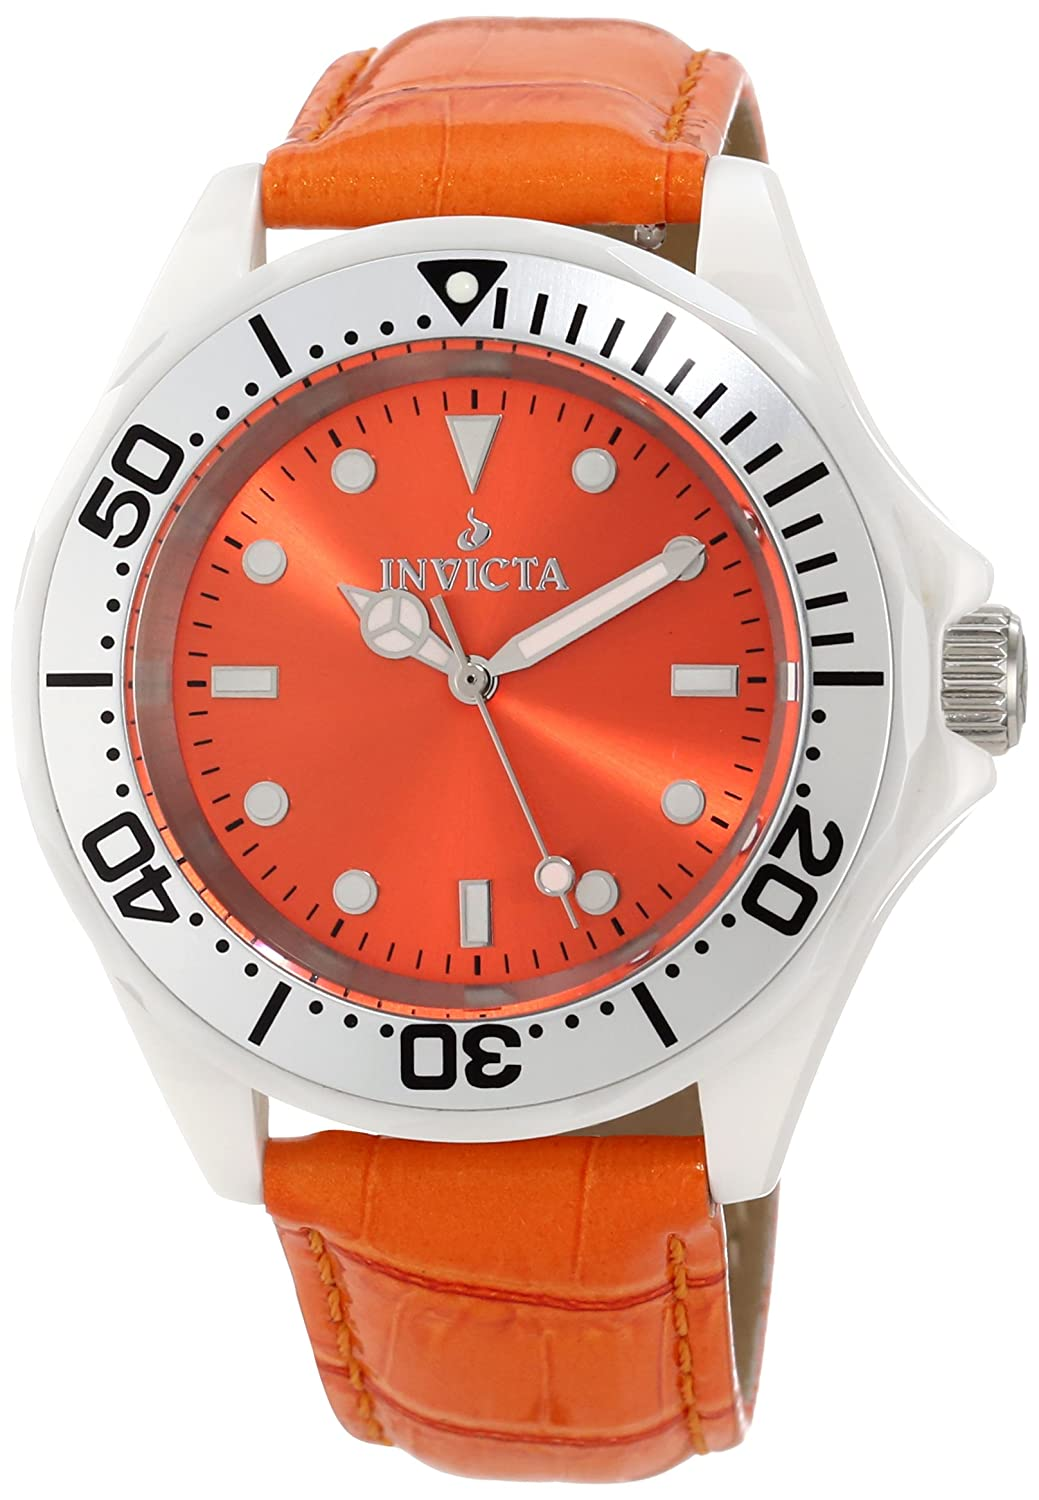 Женские наручные часы Invicta Women's 11297 Ceramic Orange Dial Interchangeable Strap Watch